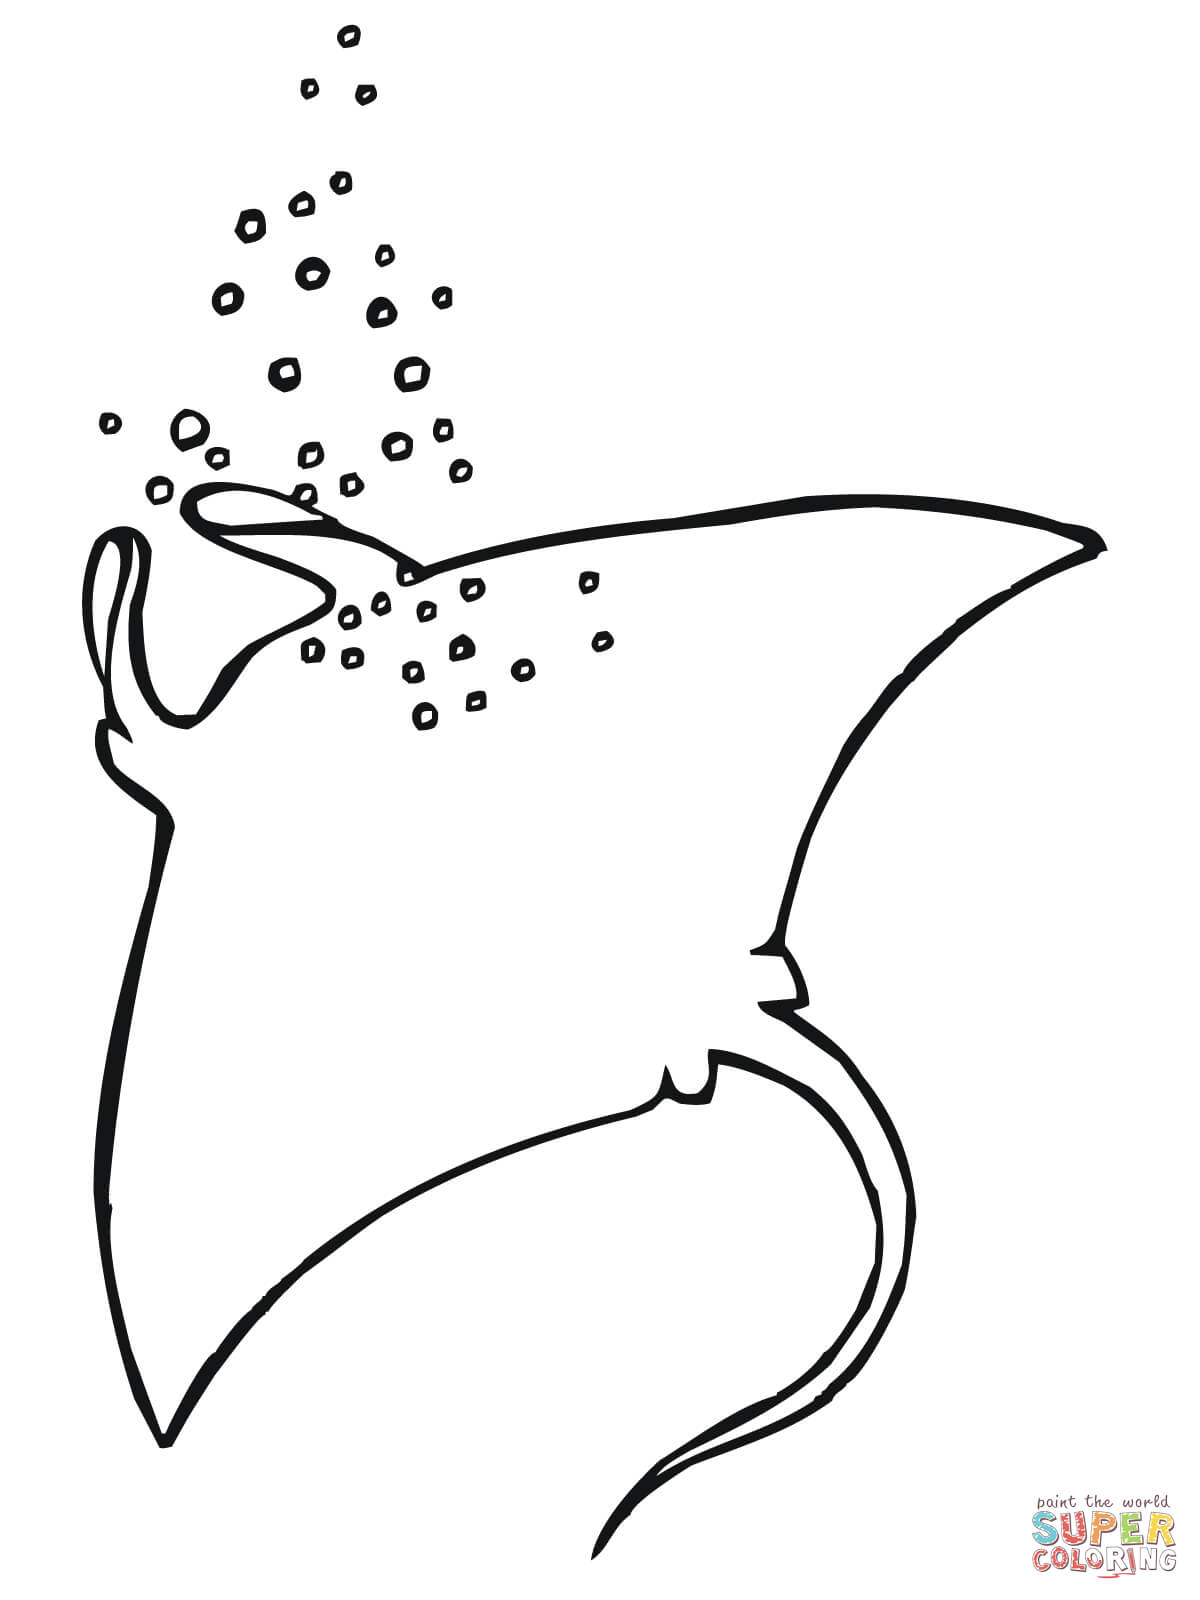 Two Manta Rays Coloring Page Free Printable Coloring Pages